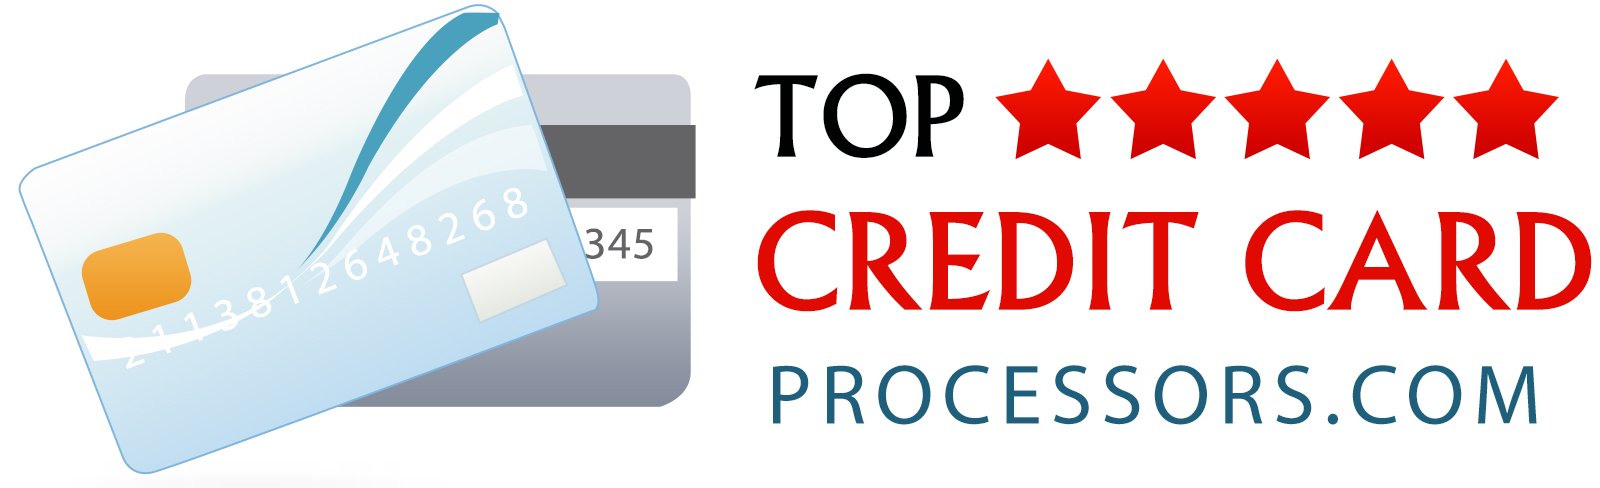 Thirty Best High Risk Credit Card Processing Companies Named by topcreditcardprocessors.com for August 2021